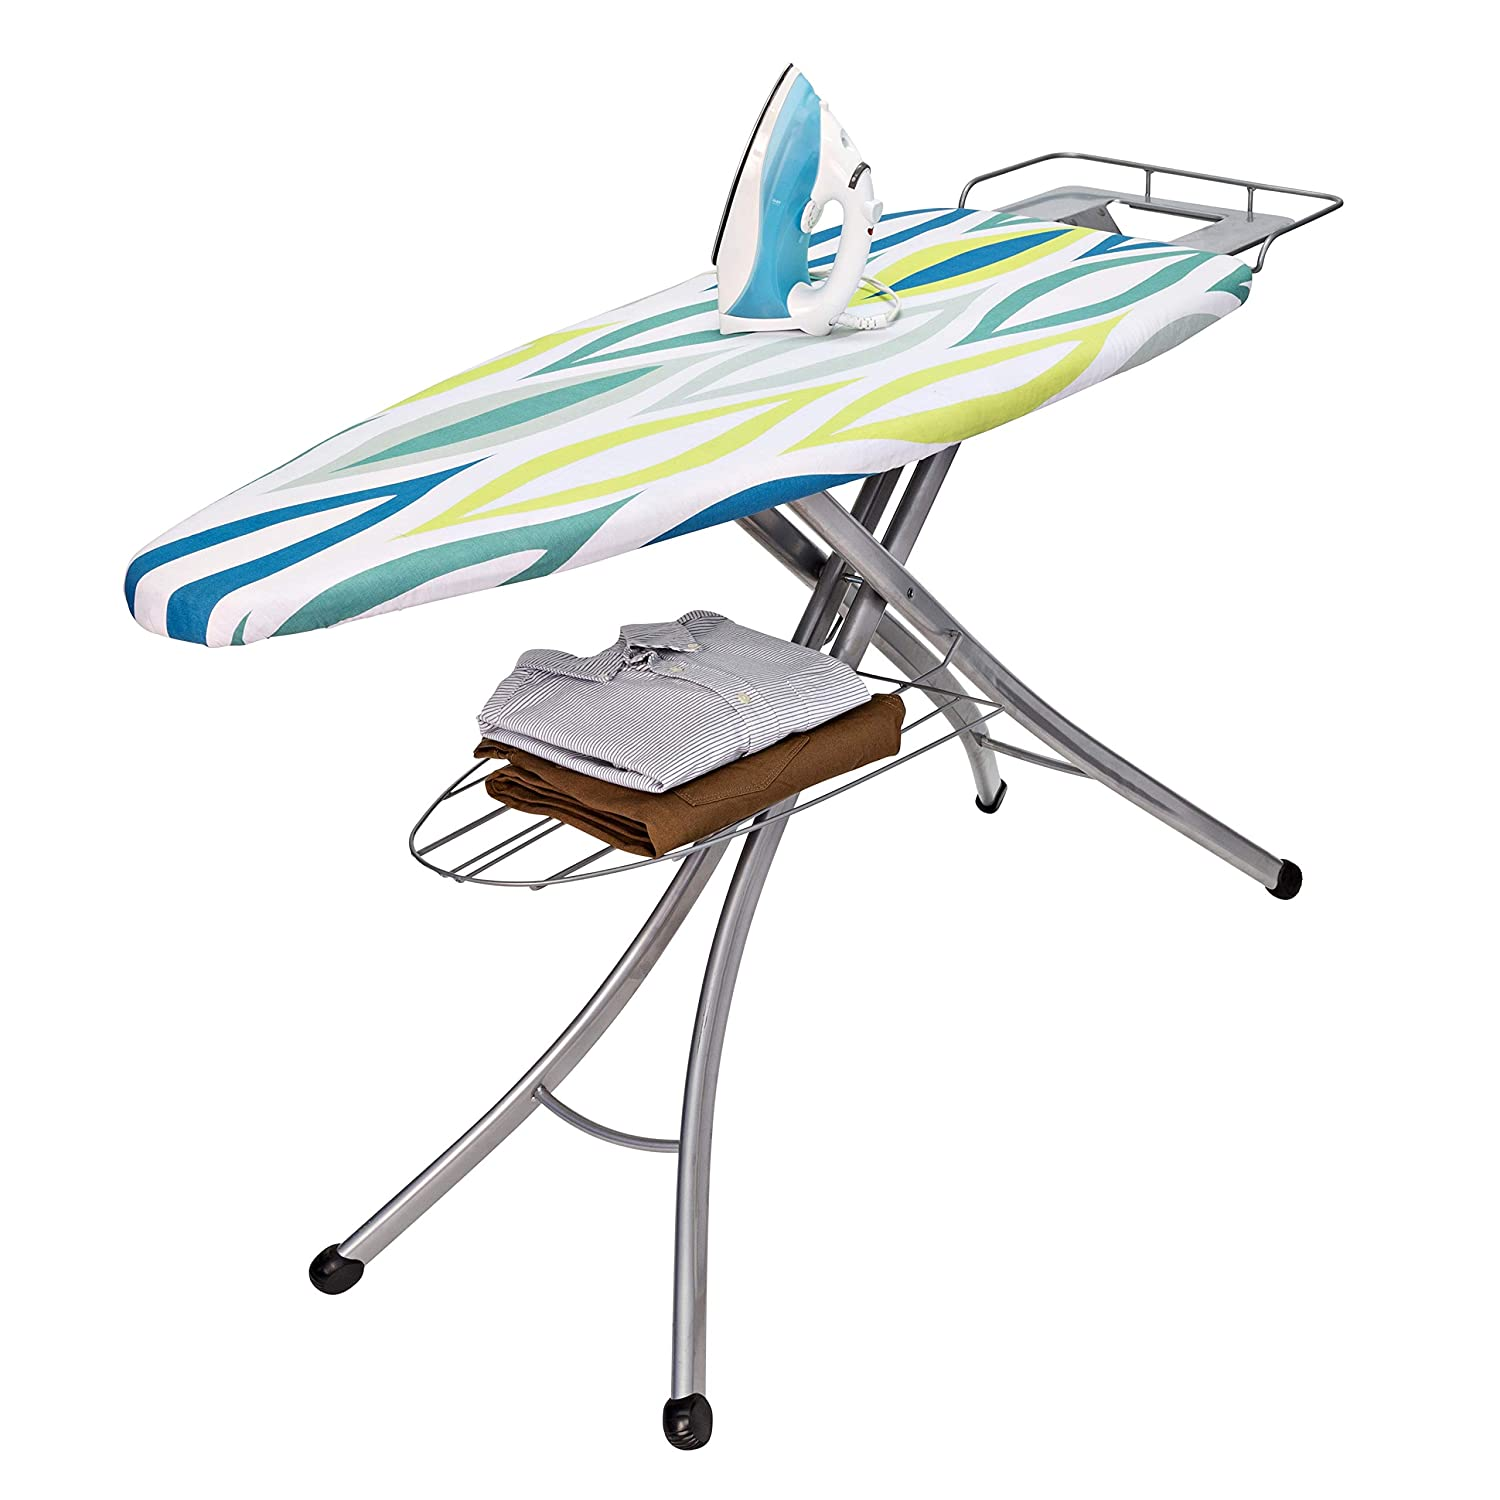 Honey-Can-Do BRD-02955 18 by 48-Inch Ironing Board with Rest and Shelf by Honey-Can-Do B009LFQ4U0